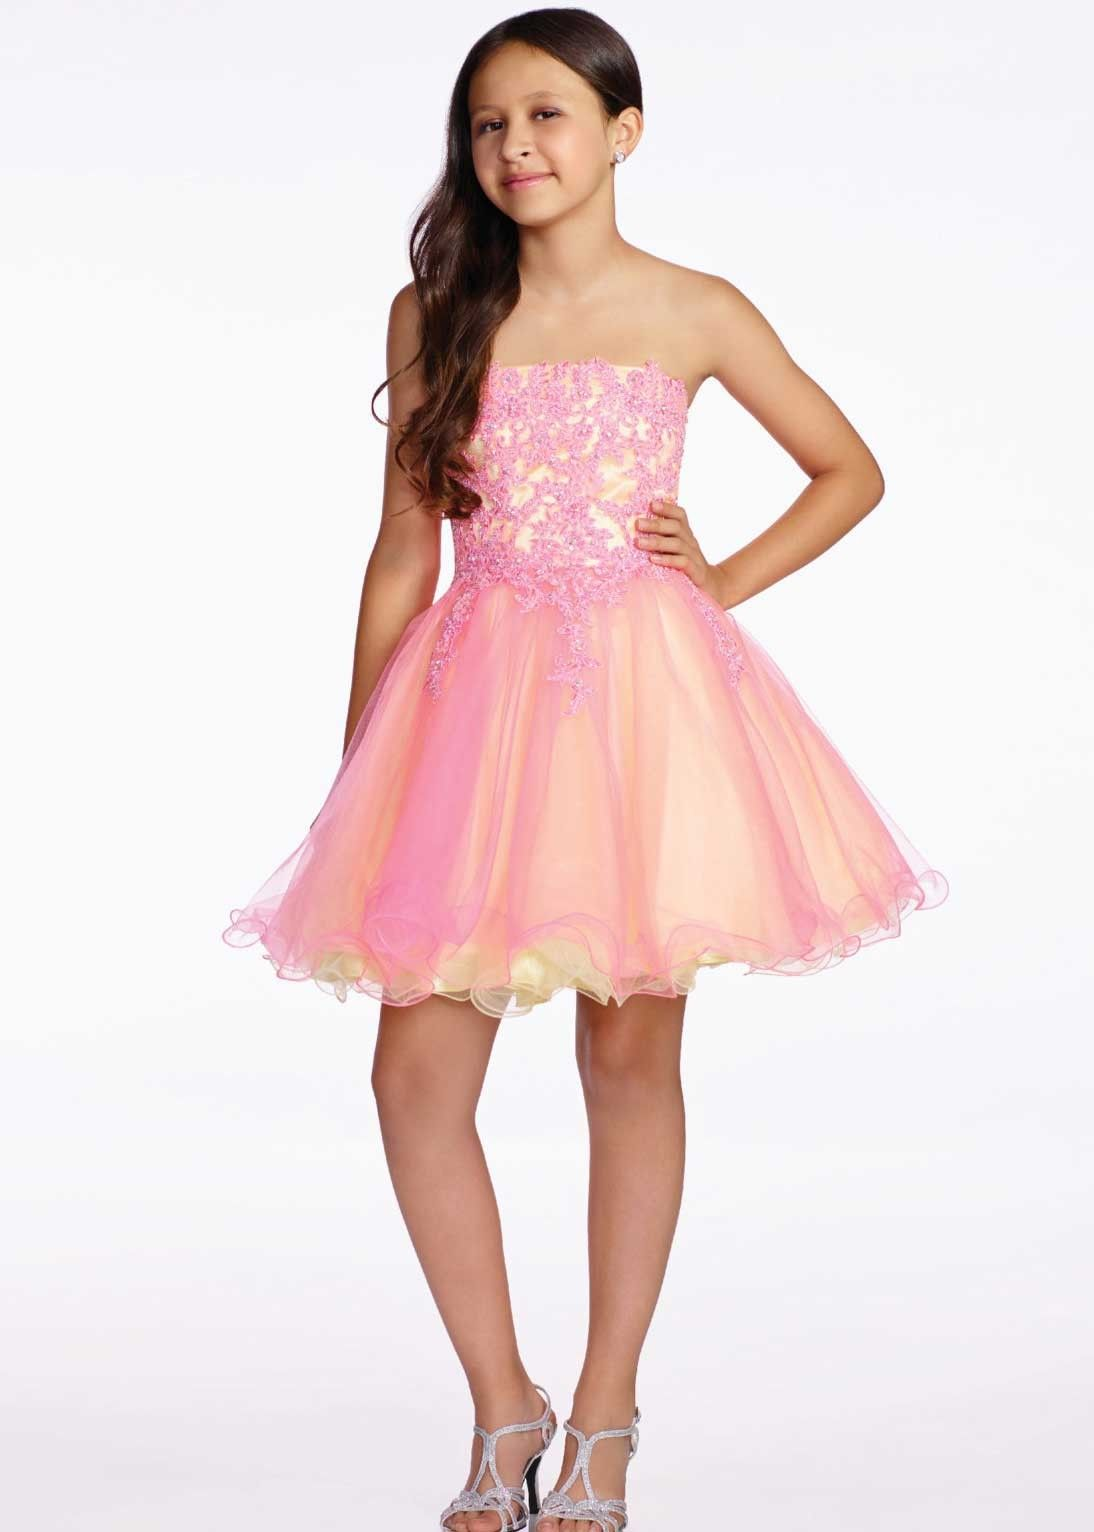 Lexie by Mon Cheri TW11657 Pink/Yellow Lace & Tulle Girls Party ...